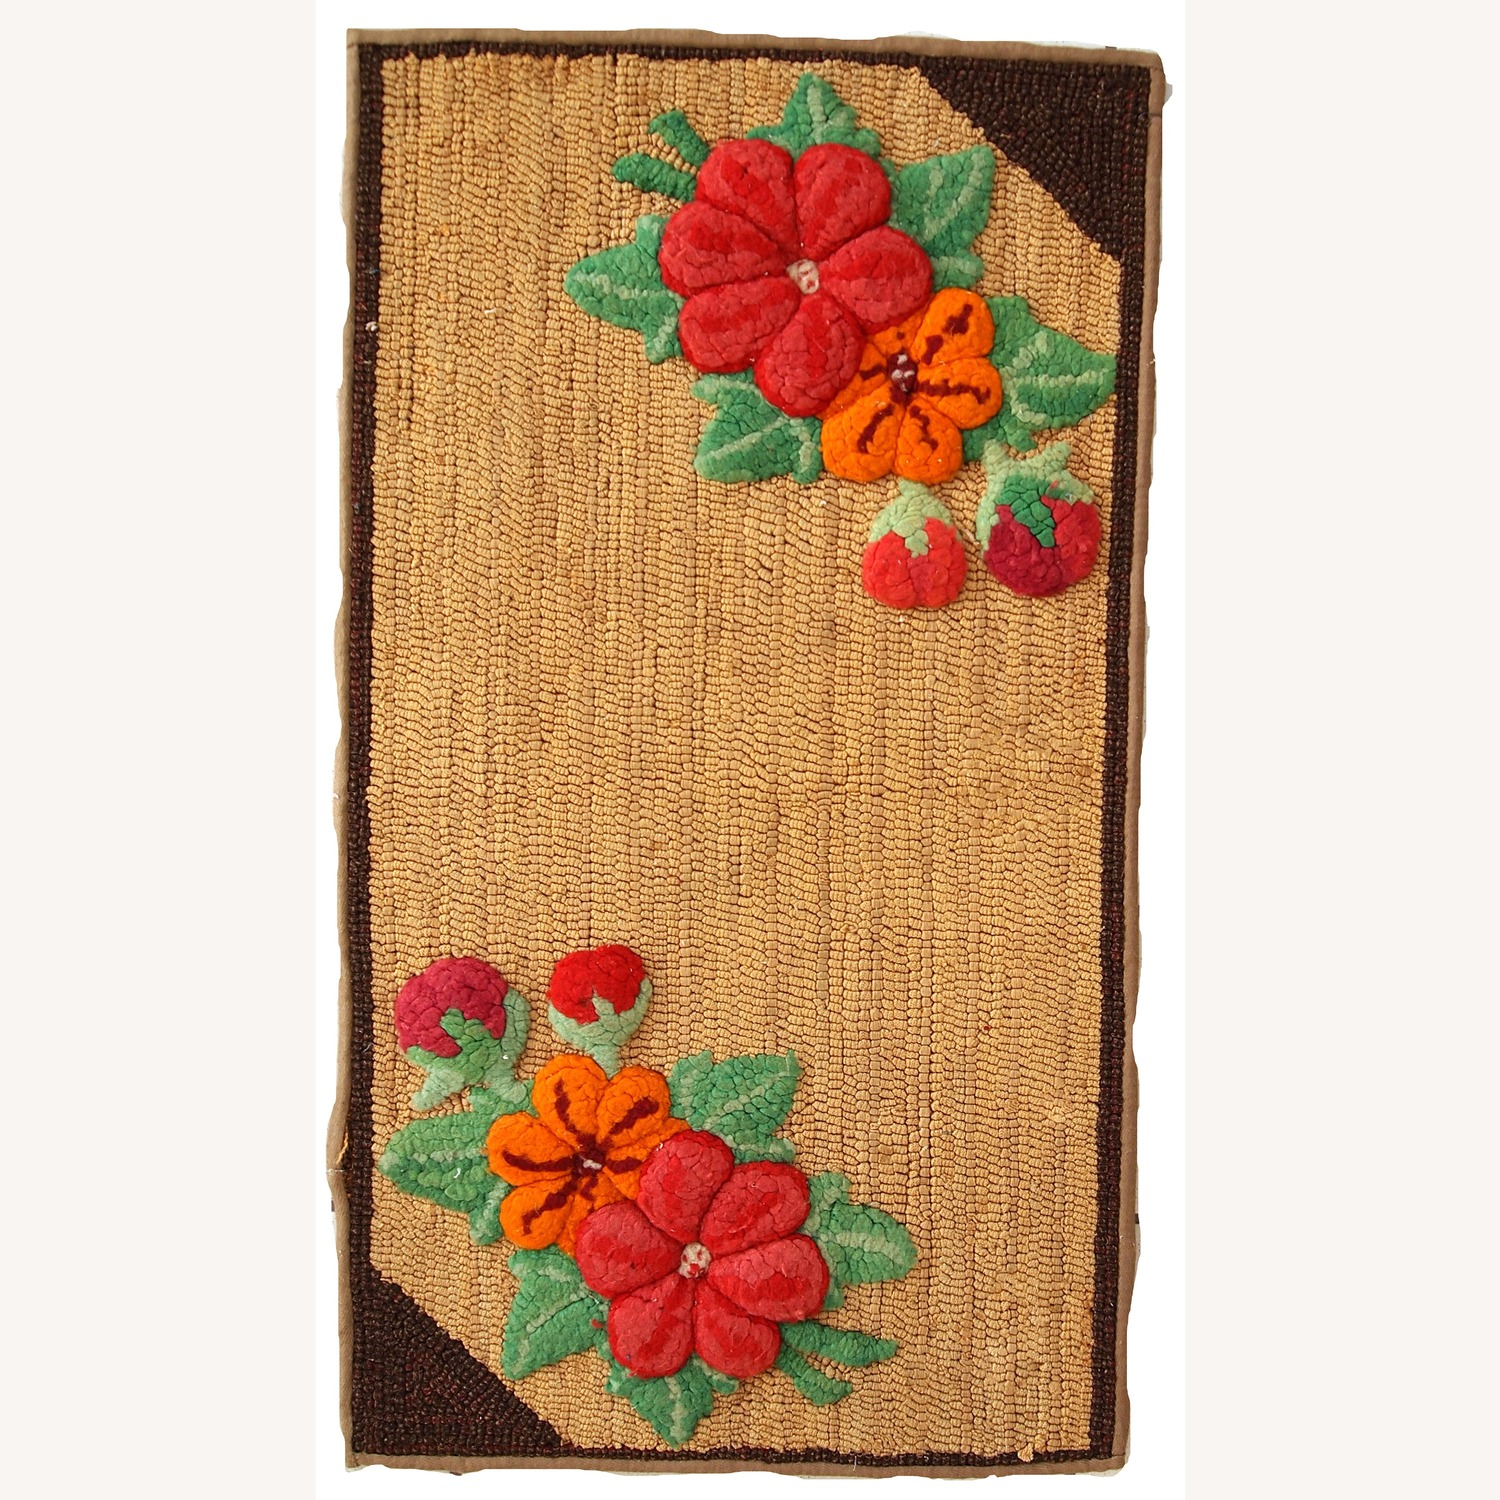 Handmade Antique American Hooked Rug - image-11